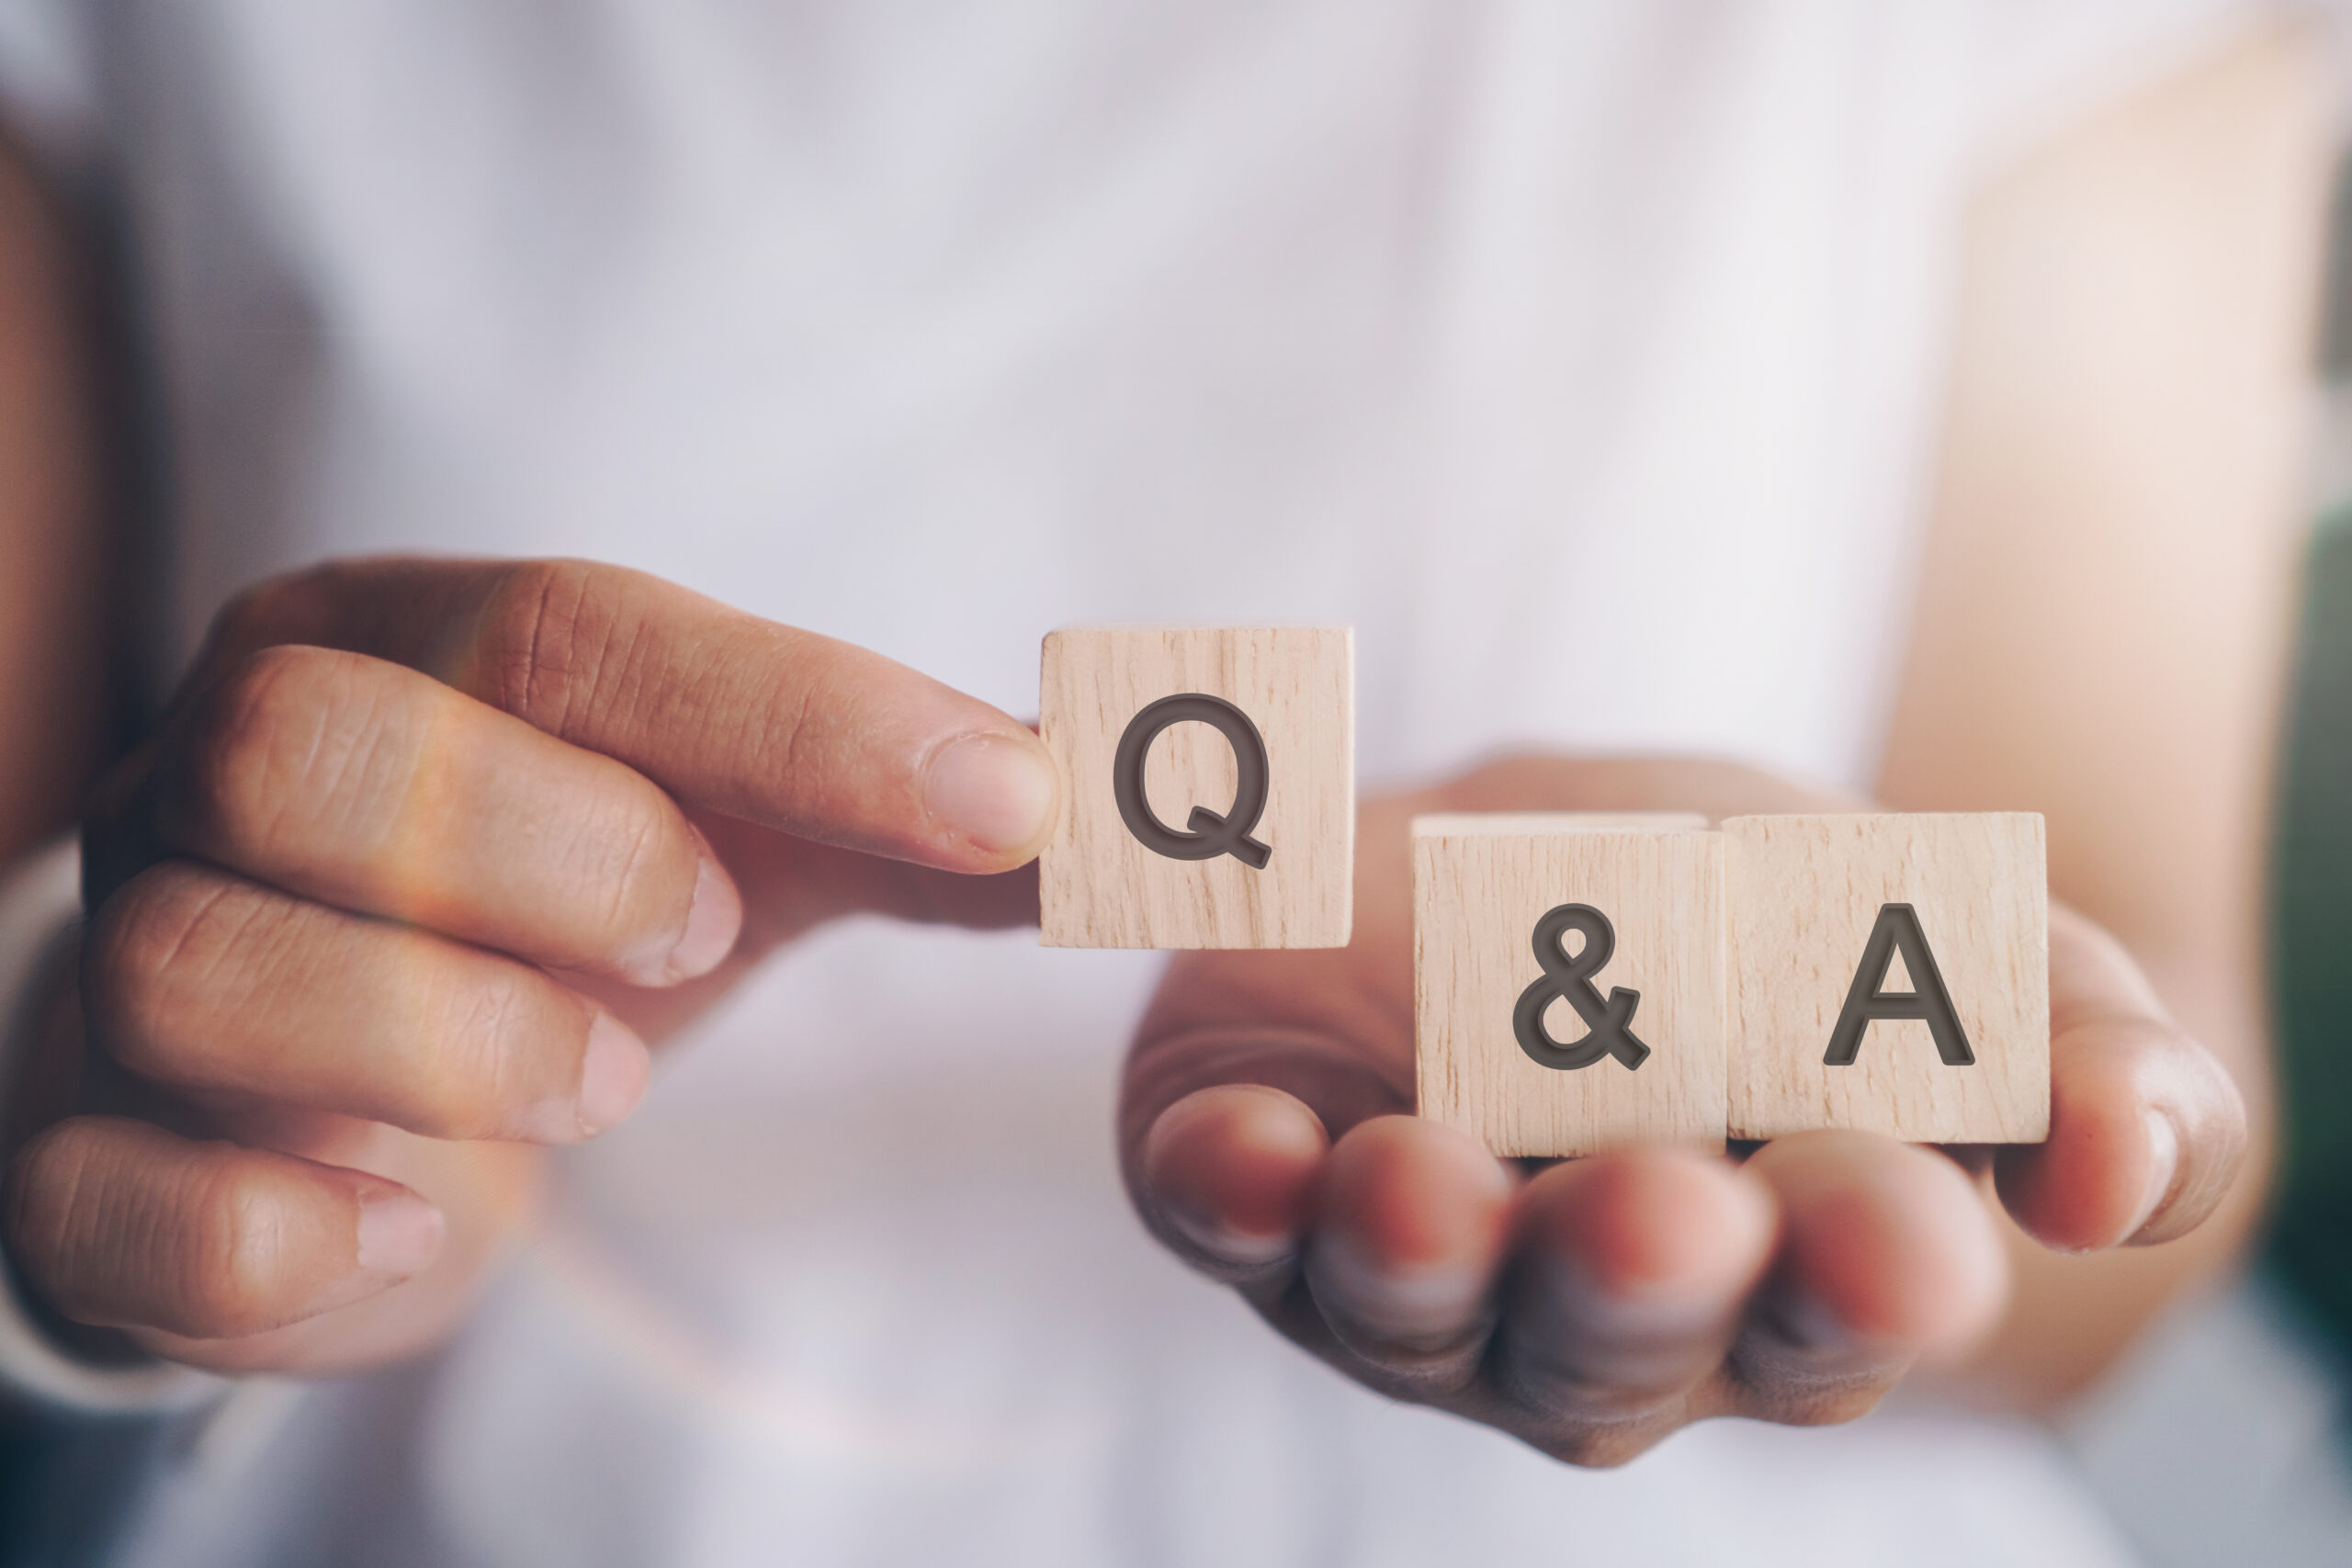 Belvoir Rental Index Live; Your Questions Answered - https://roomslocal.co.uk/blog/belvoir-rental-index-live-your-questions-answered #rental #index #live #your #questions